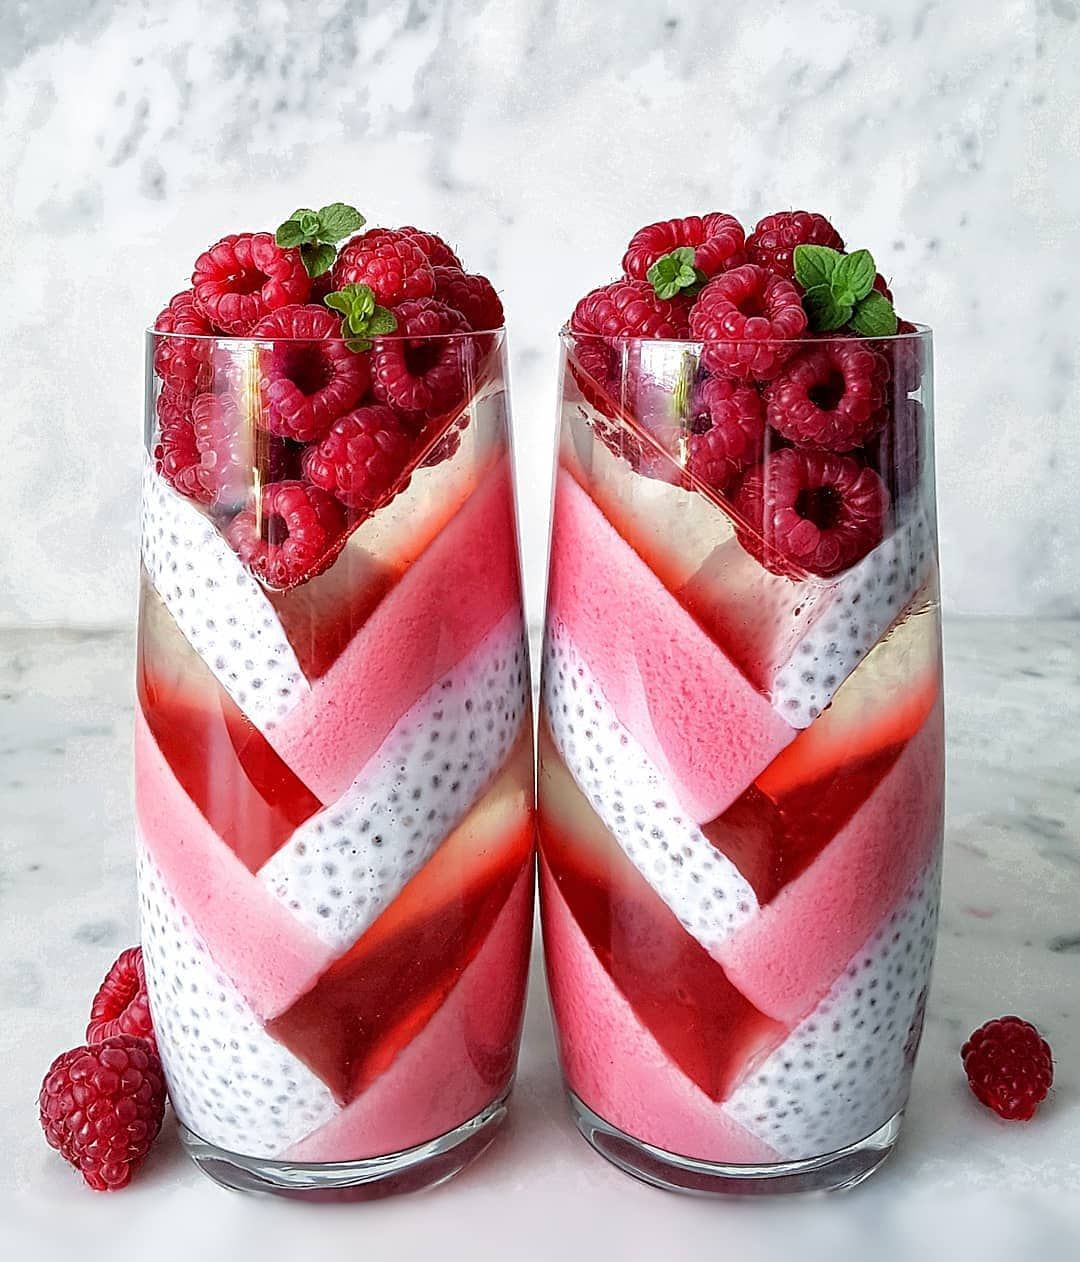 Healthy Food On Instagram Beverage Food Photography Of Smoothie With Raspberries Chai Seeds Red White Pink Co Yogurt Dessert Popular Desserts Desserts